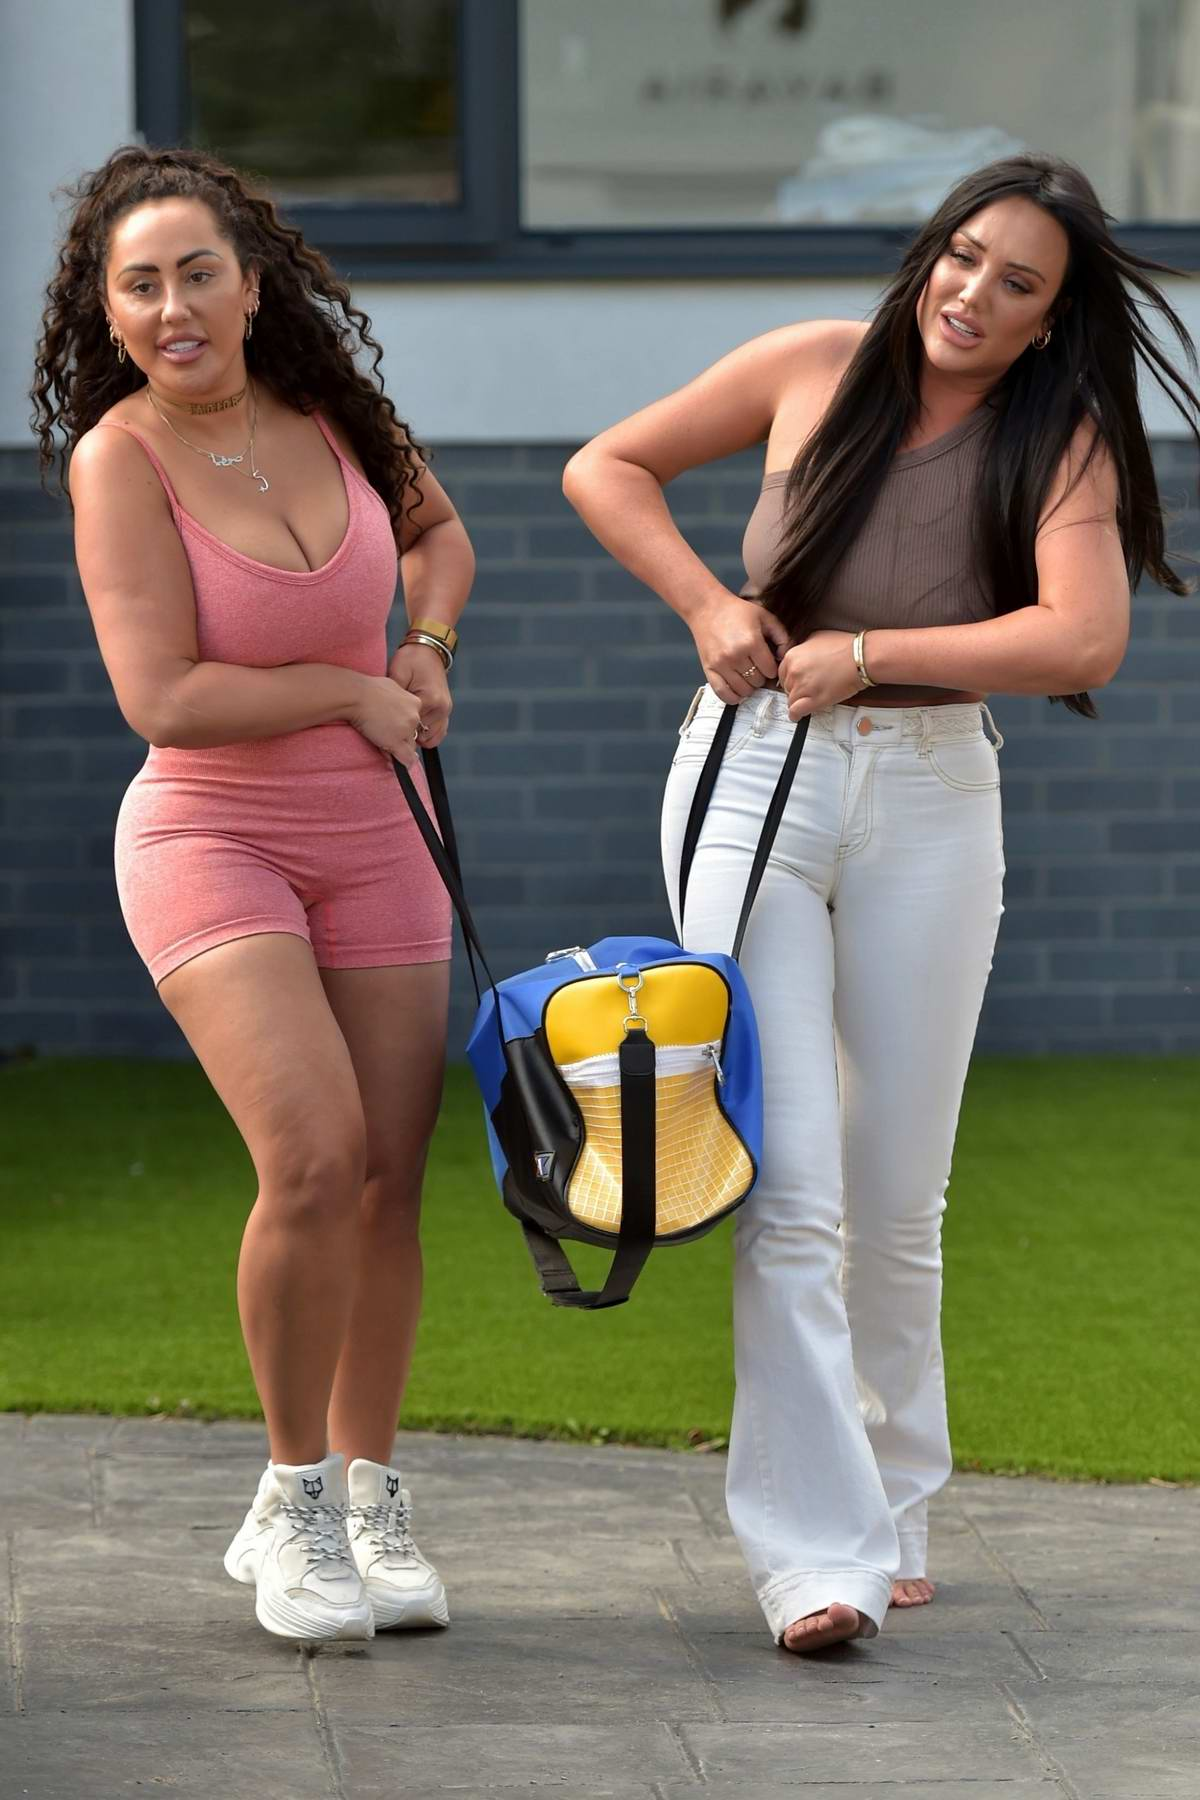 Charlotte Crosby and Sophie Kasaei struggle with their luggage as they leave for Ibiza, Spain